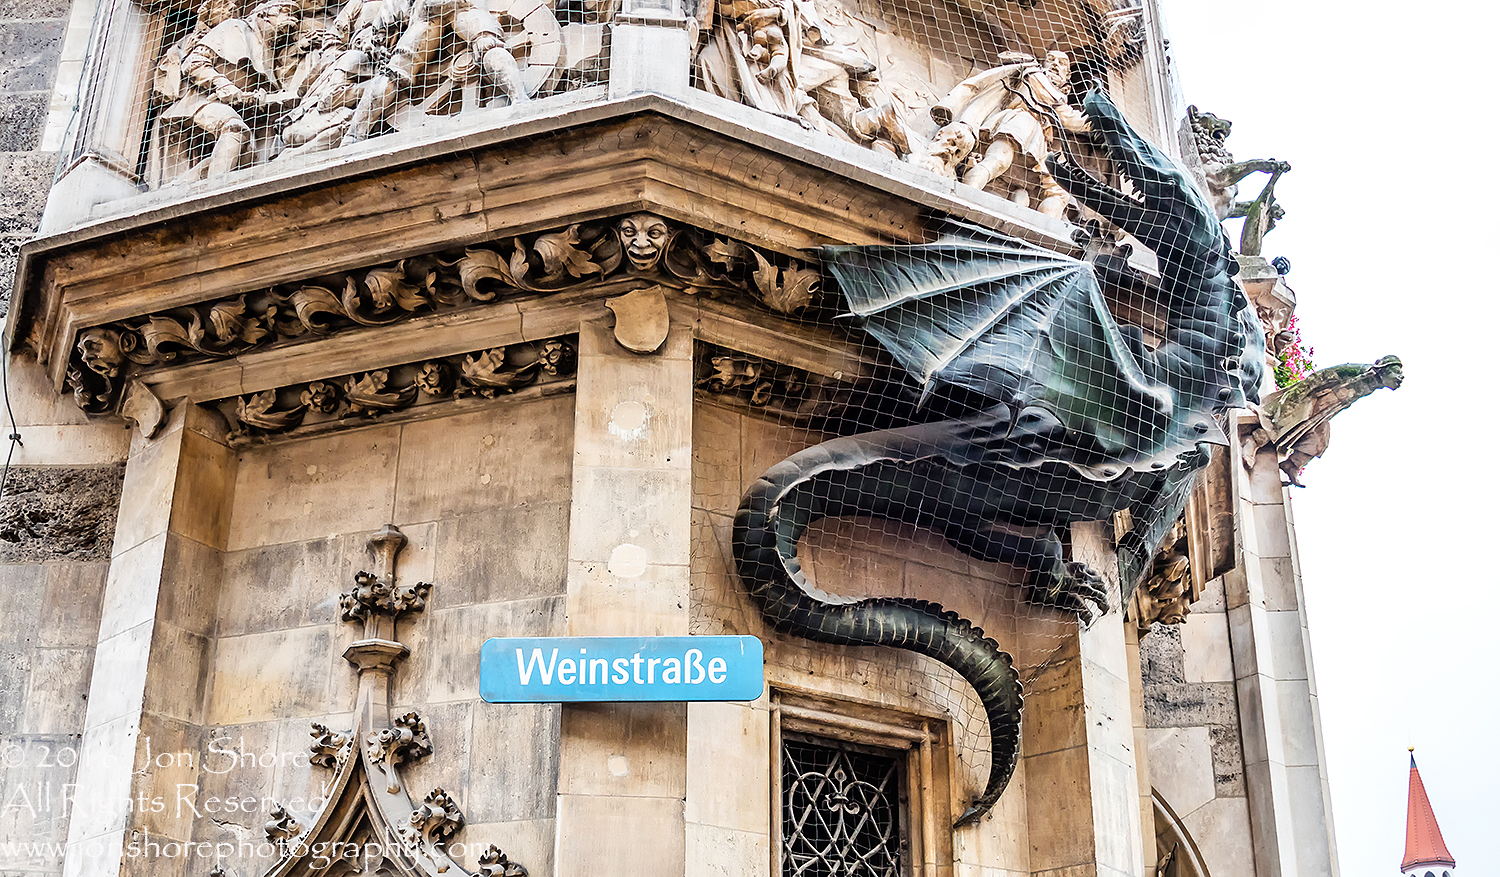 Netted Dragon on Munich City Hall. Nikkor 300mm